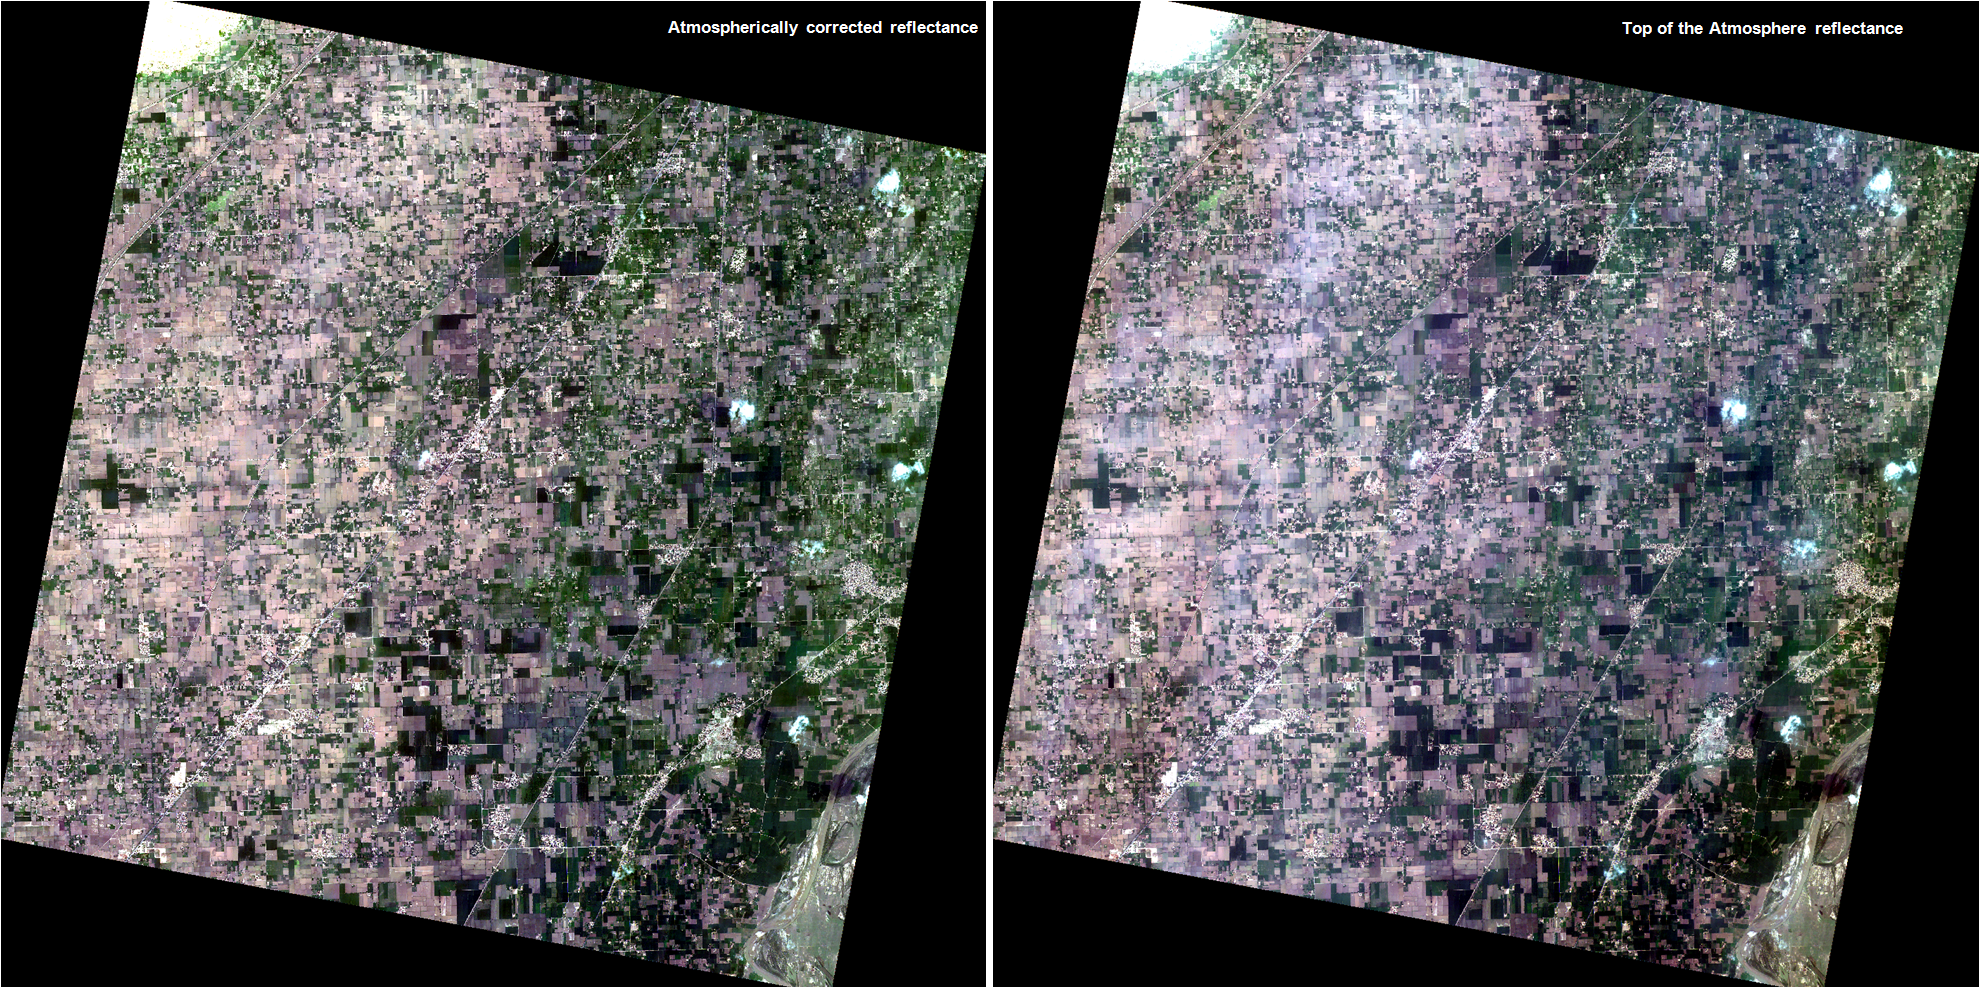 Cartosat-2 Series Satellite View of Jhang District in the Punjab Province of Pakistan on 01/07/2017